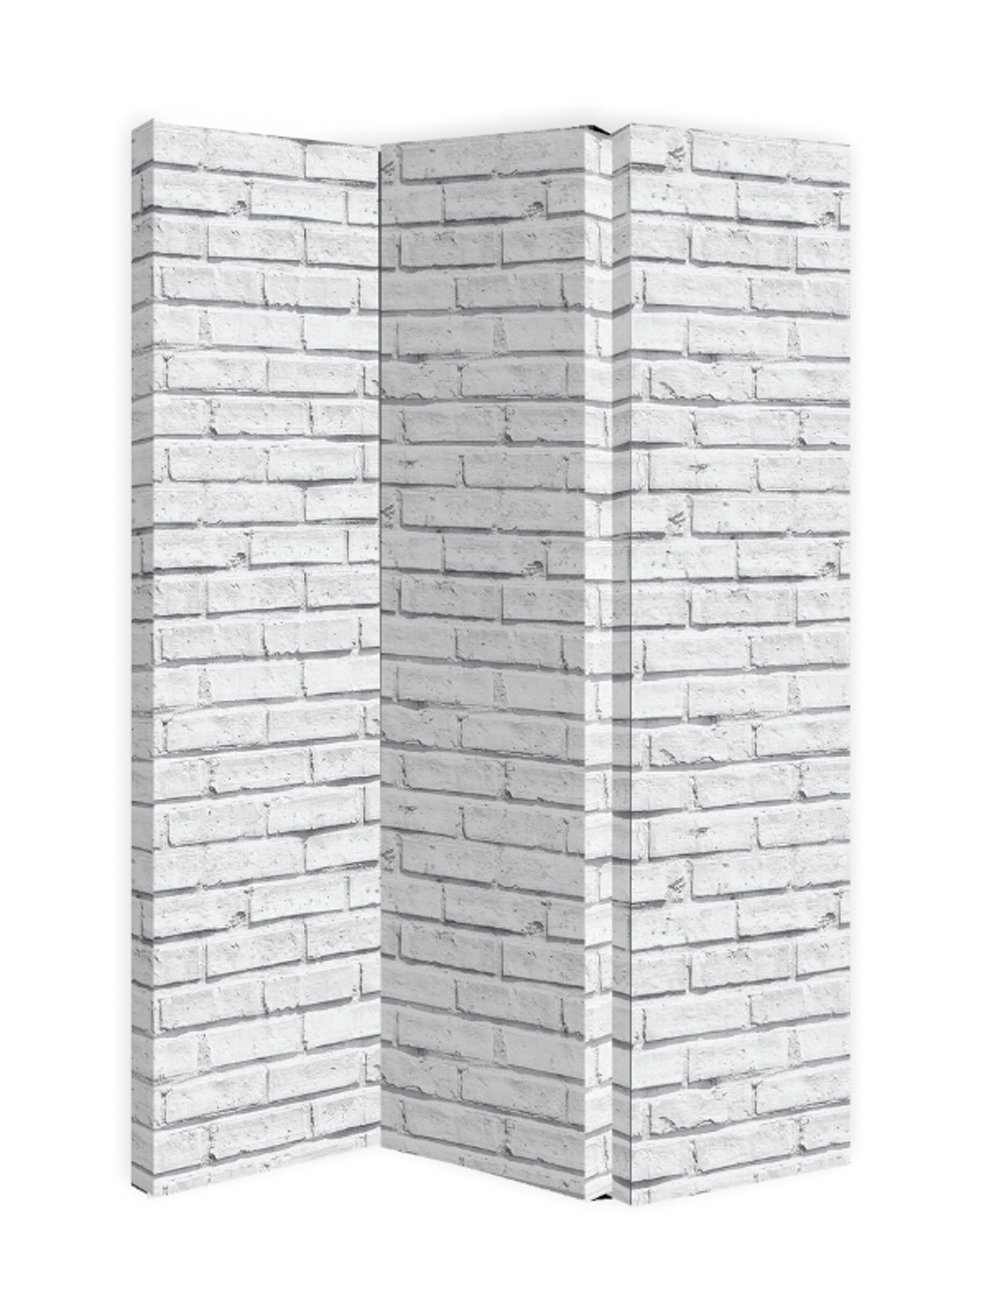 Arthouse Screen/Room Divider, Polyester, White Brick Colour, 150 x 120 x 2.5 4622